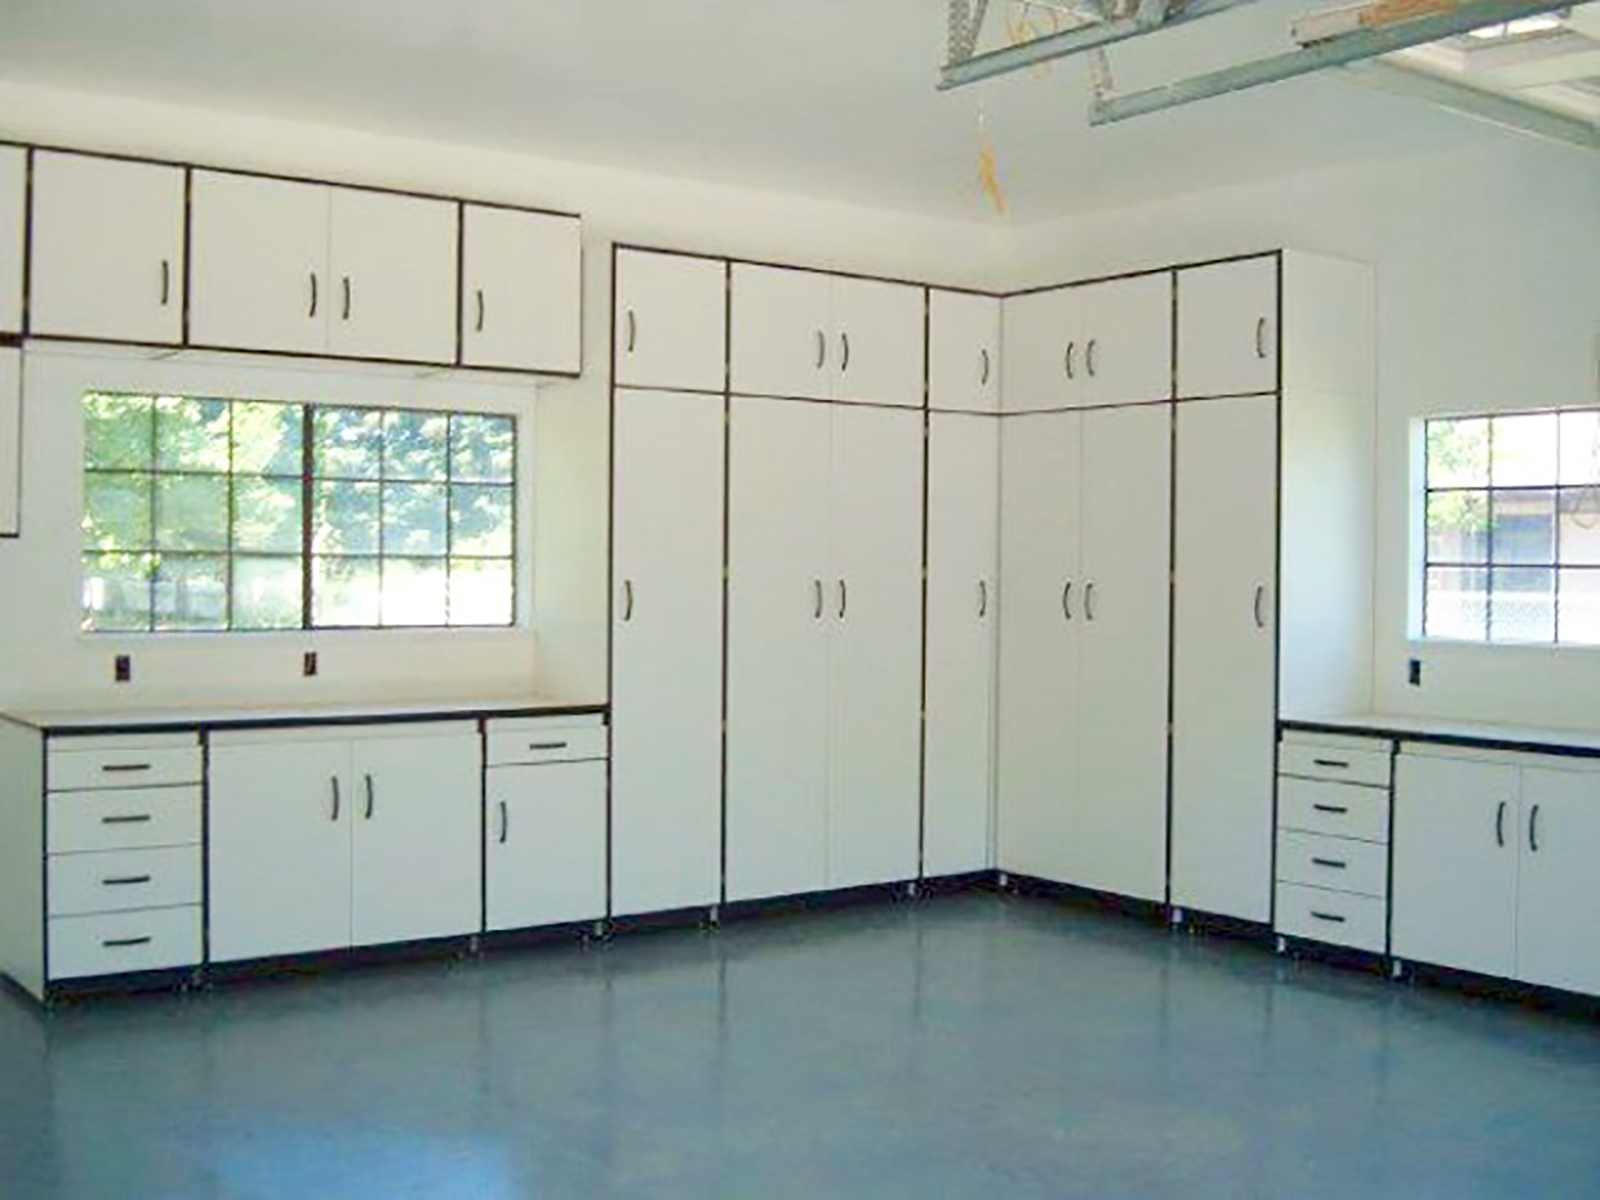 products cabinets garage cabinetry custom steel cabinet gl system countertops